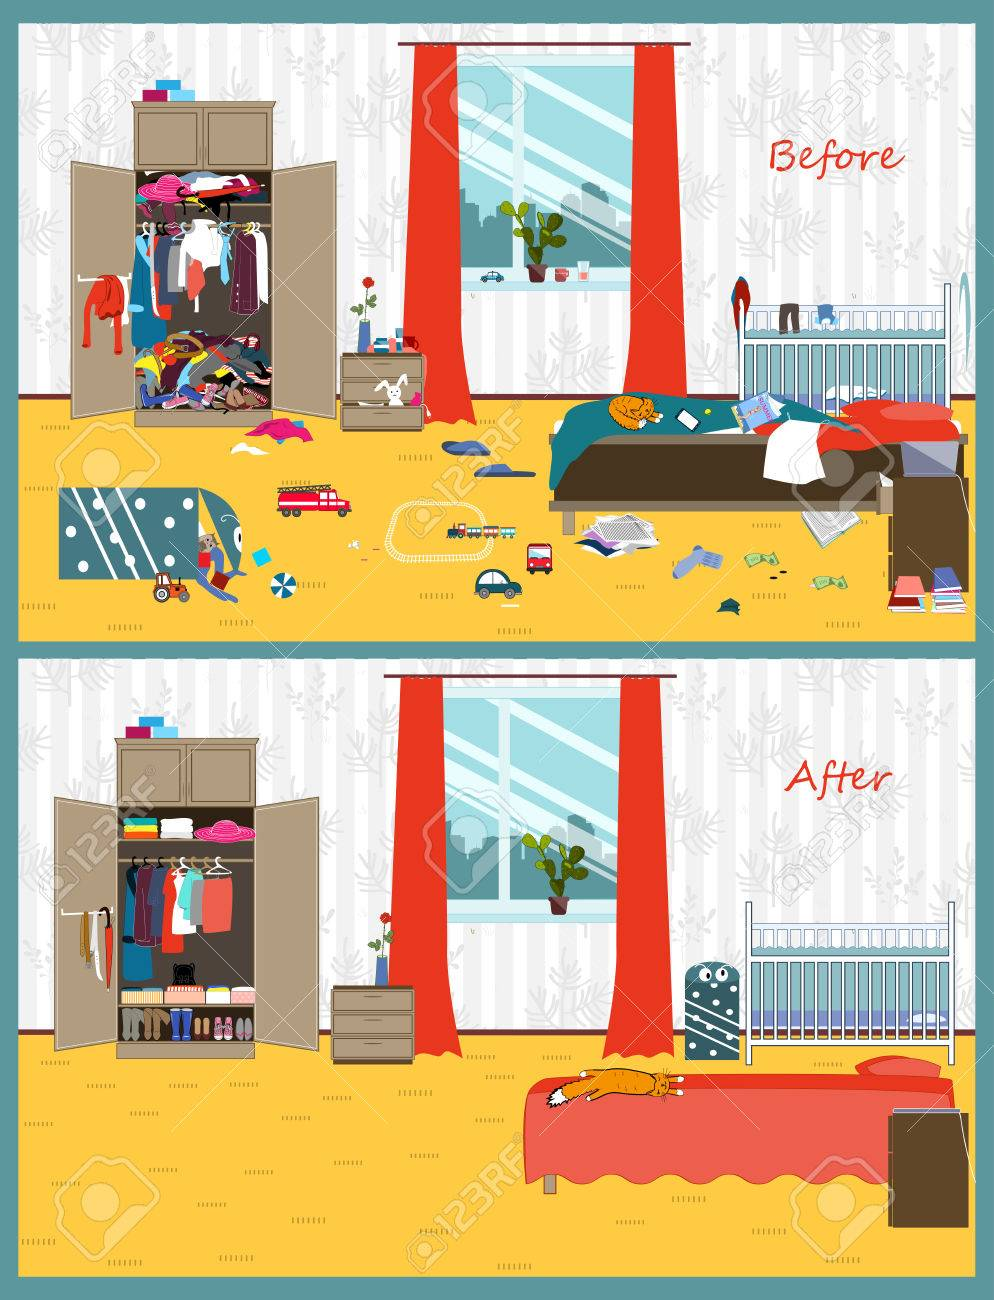 Dirty And Clean Room Disorder In The Interior Before After Cleaning